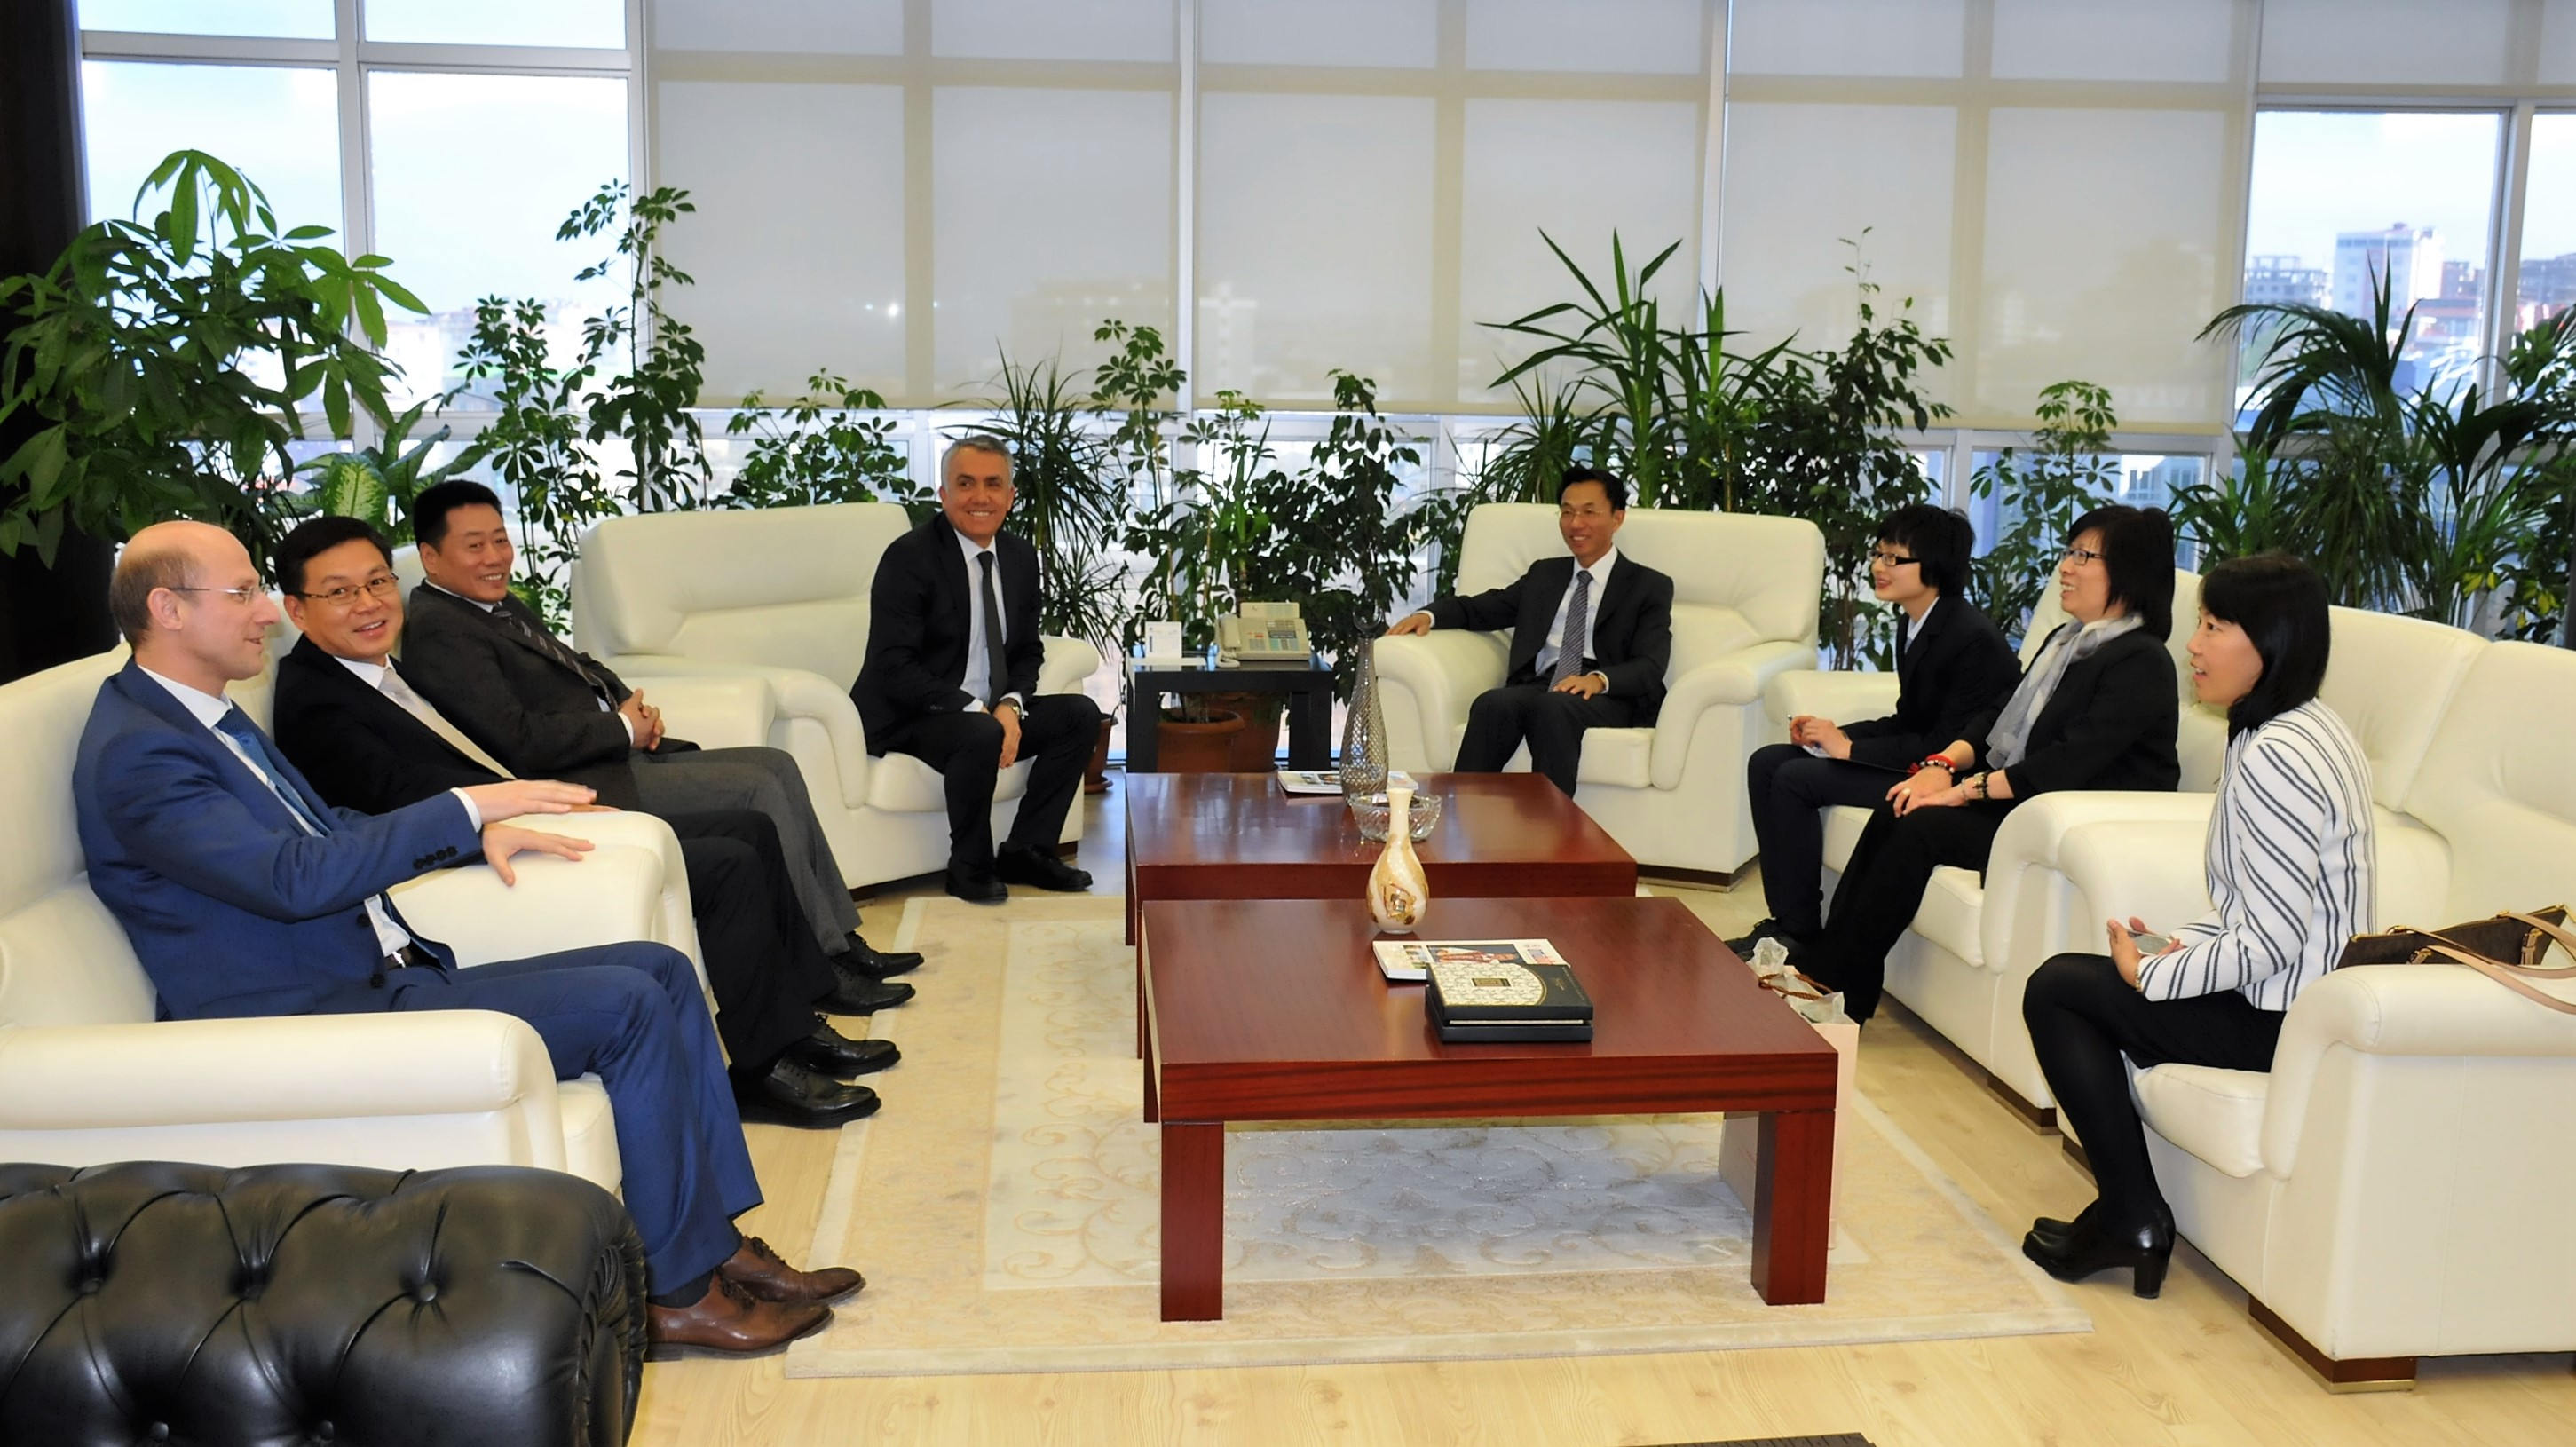 http://www.omu.edu.tr/sites/default/files/files/ambassador_of_the_peoples_republic_of_china_visits_rector_bilgic/dsc_0010.jpg